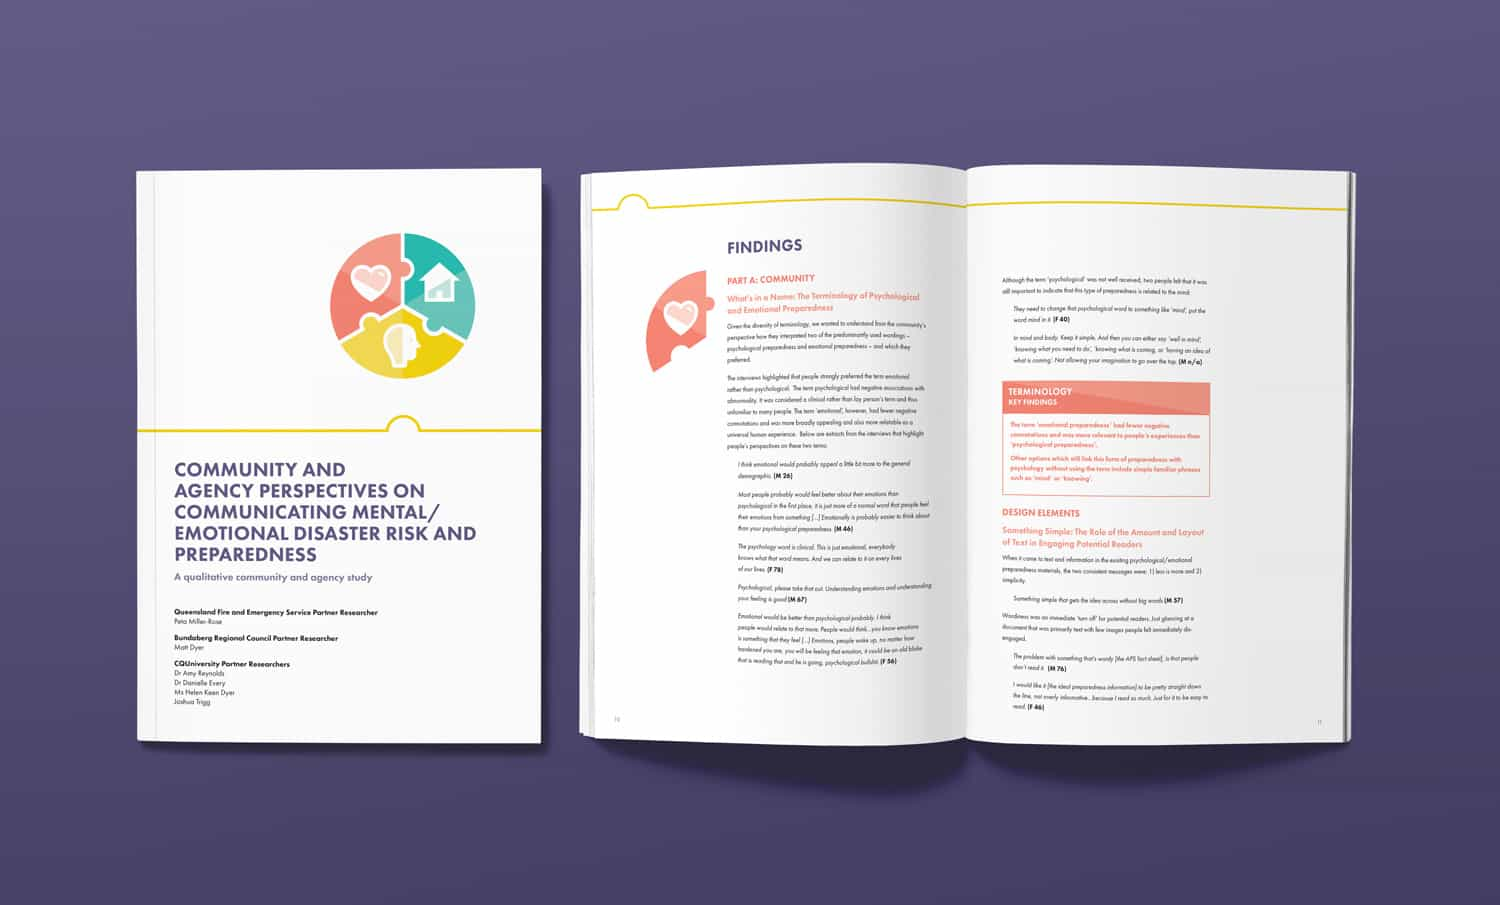 Head Heart Home disaster awareness campaign report for Central Queensland University by Flux Visual Communication